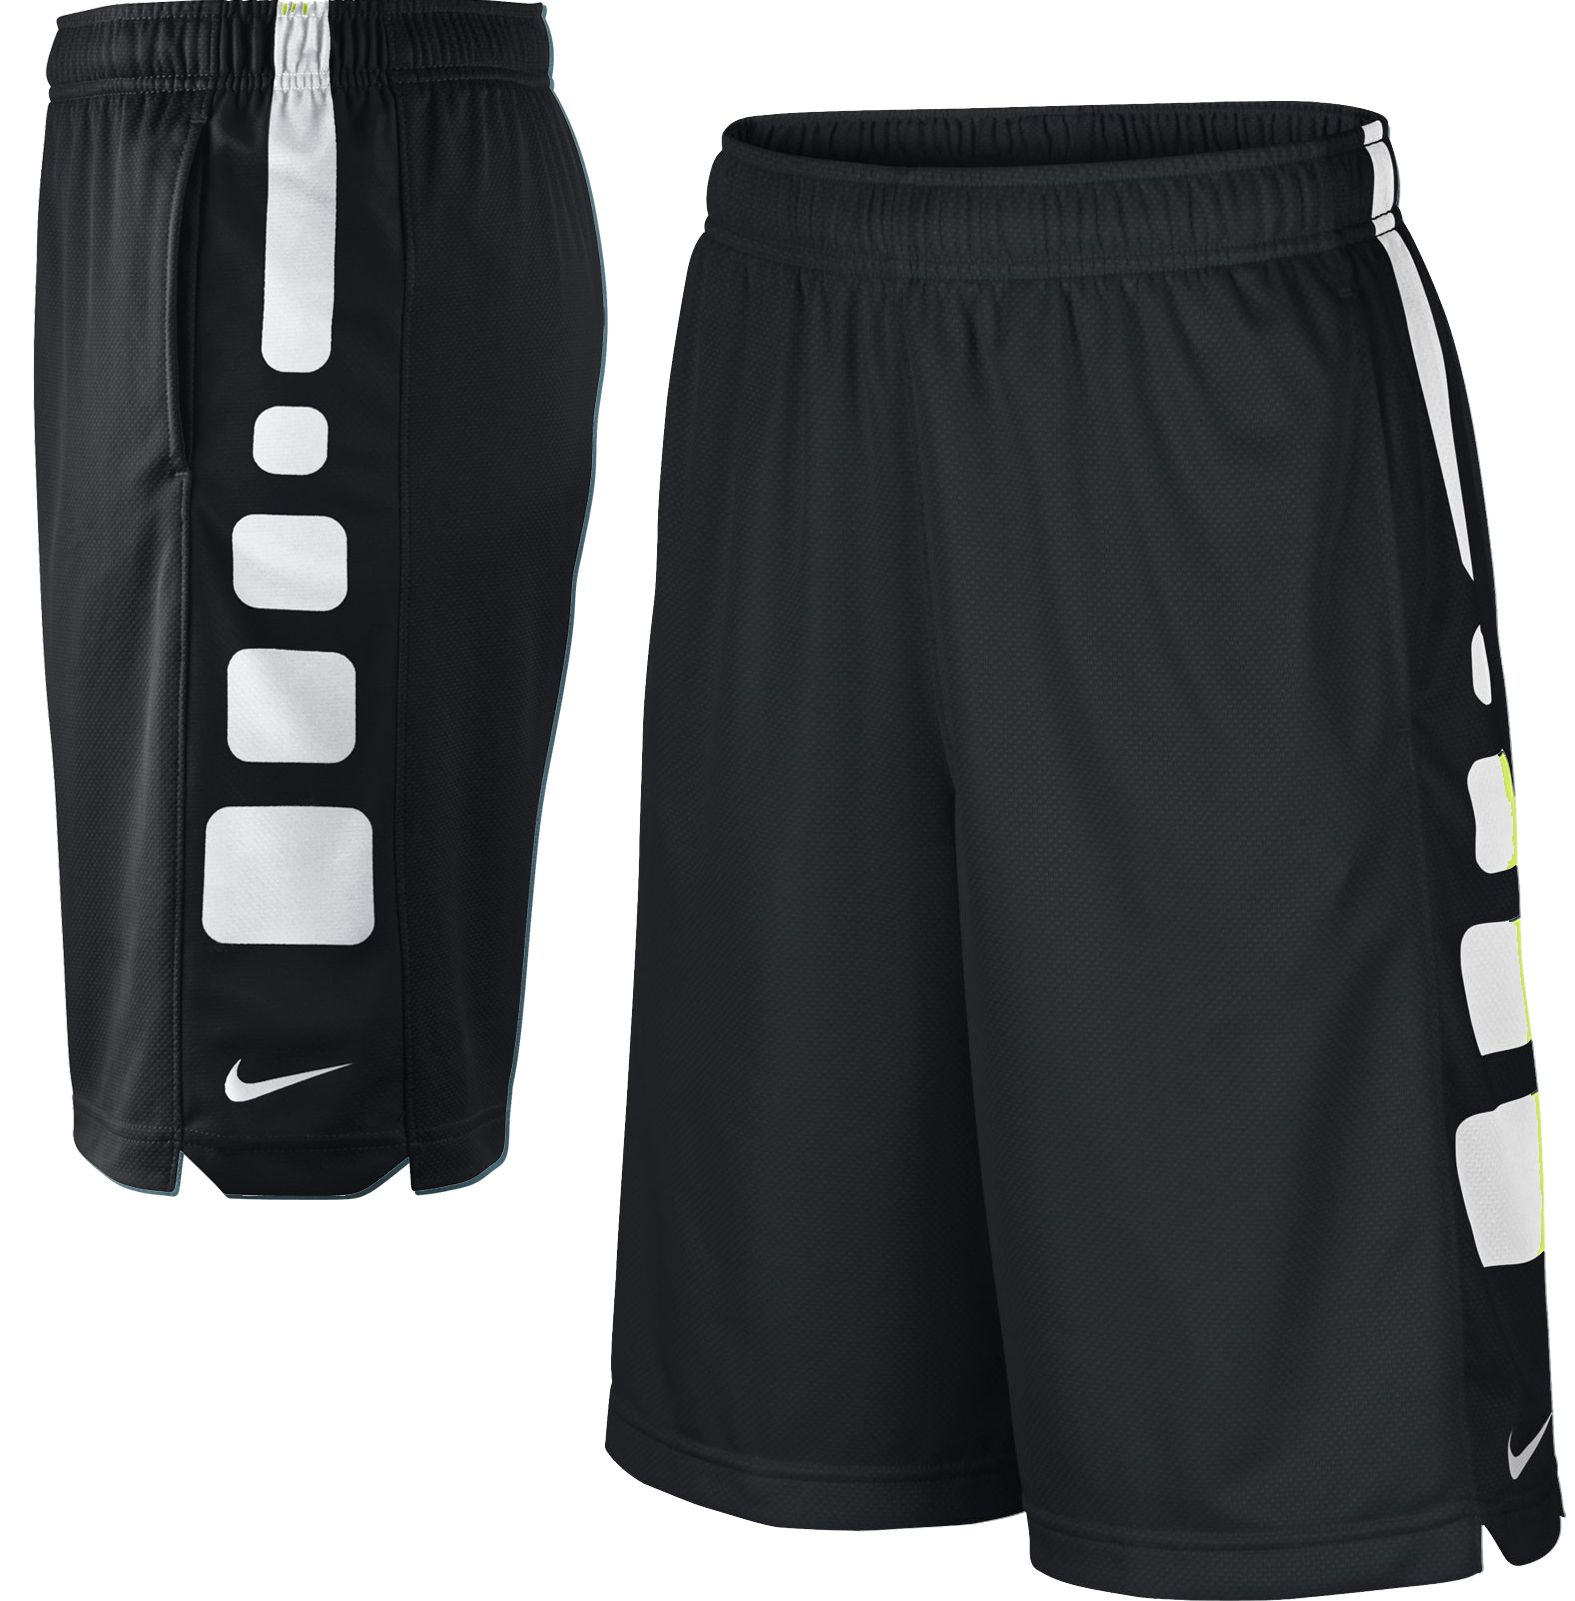 check out 4cede 8beb6 85%OFF Nike Boys Elite Stripe Basketball Shorts DICKS Sporting Goods ·